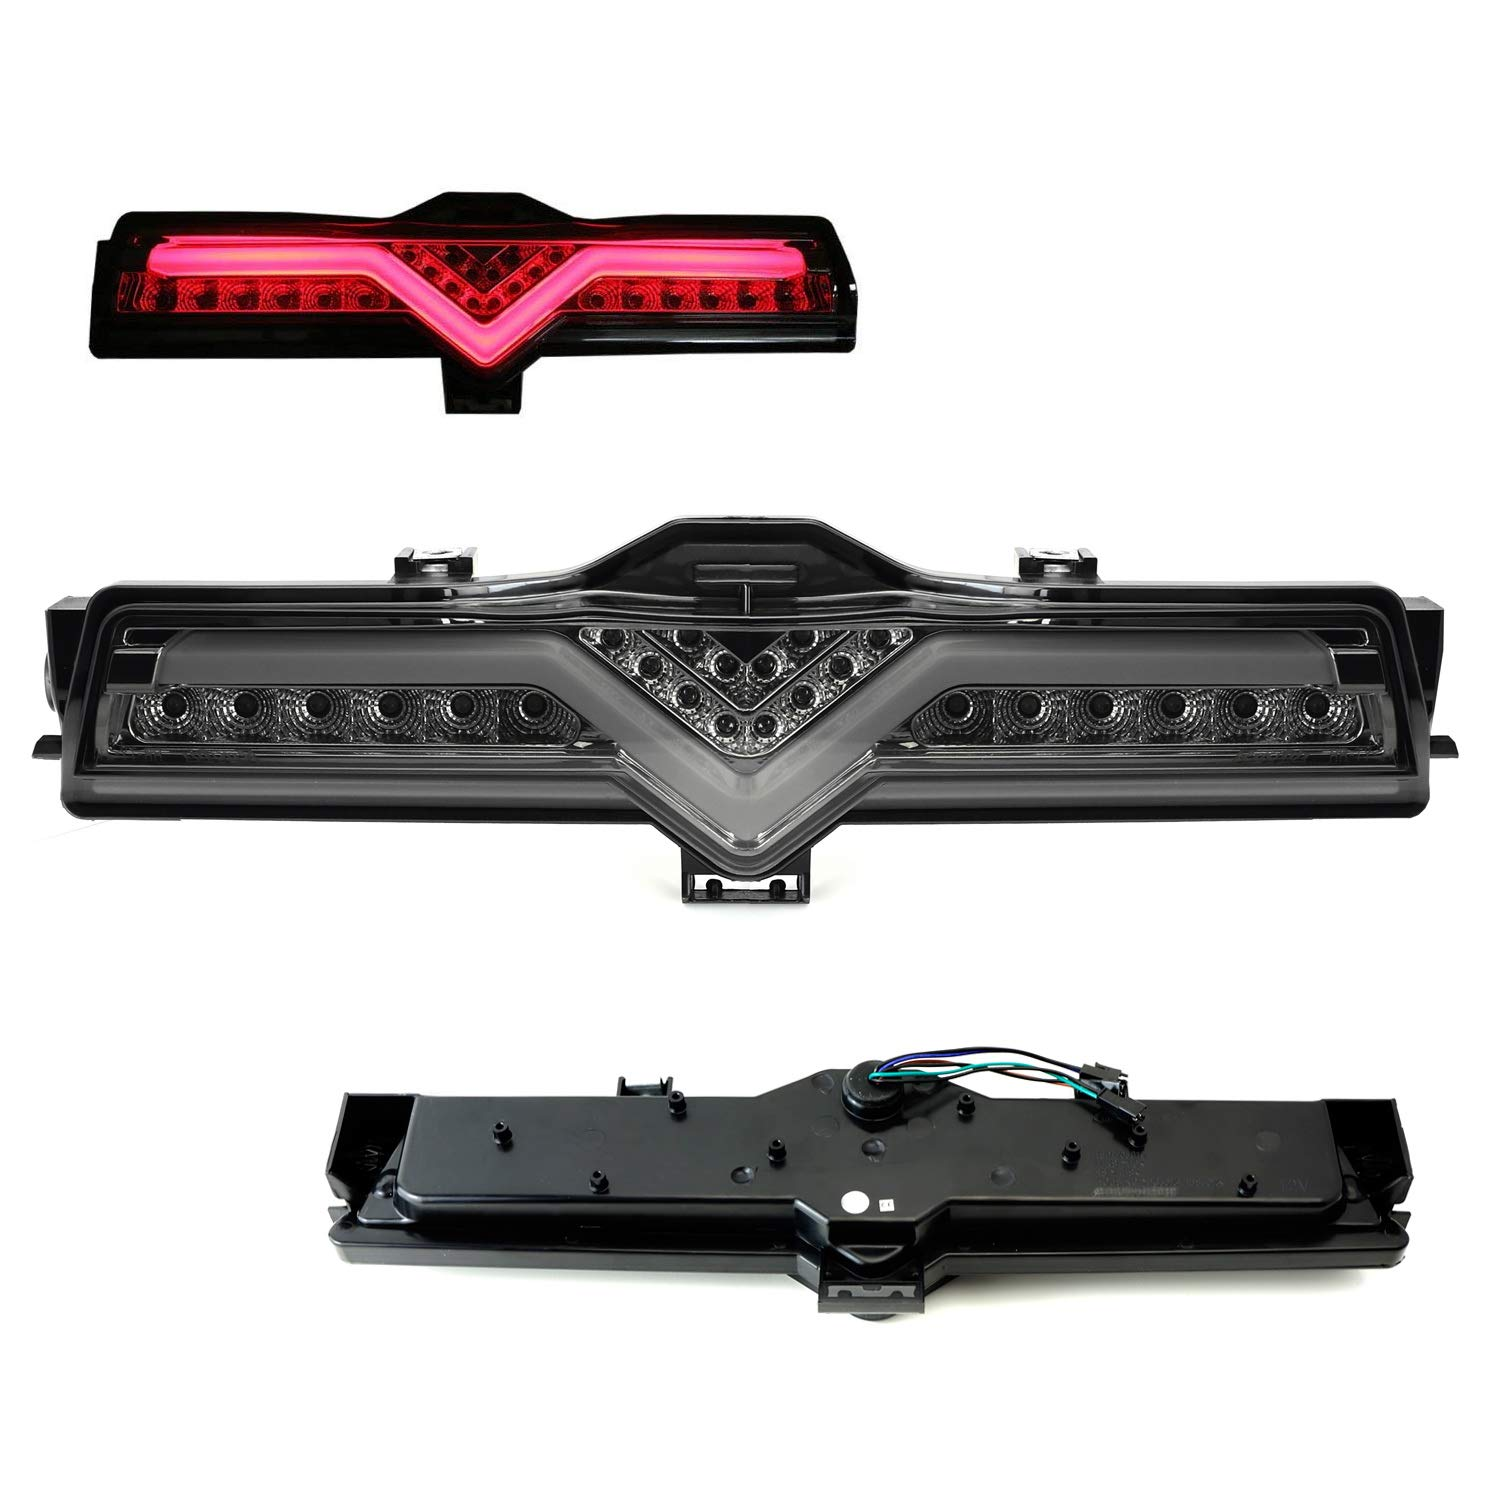 17-up Toyota 86 13-18 Subaru BRZ All-in-One Assembly Functions as Tail Light iJDMTOY Smoked Lens AIO LED Rear Foglamp Kit For 13-16 Scion FR-S Brake Light /& Backup Reverse Light iJDMTOY Auto Accessories Upgrade for US model w//o rear fog lamp